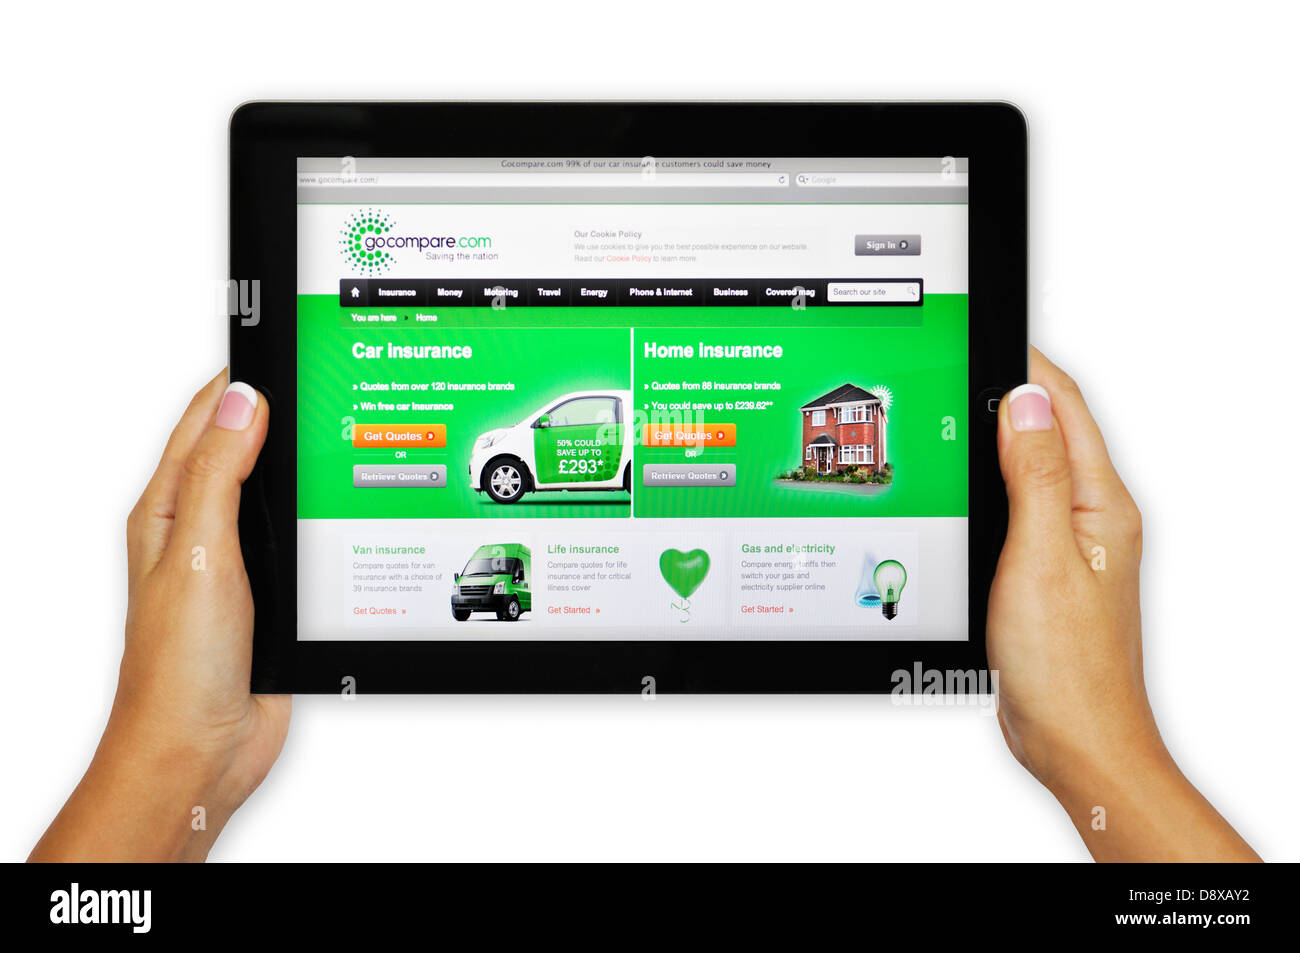 Gocompare Website Insurance Rates Comparison On Ipad Stock Photo